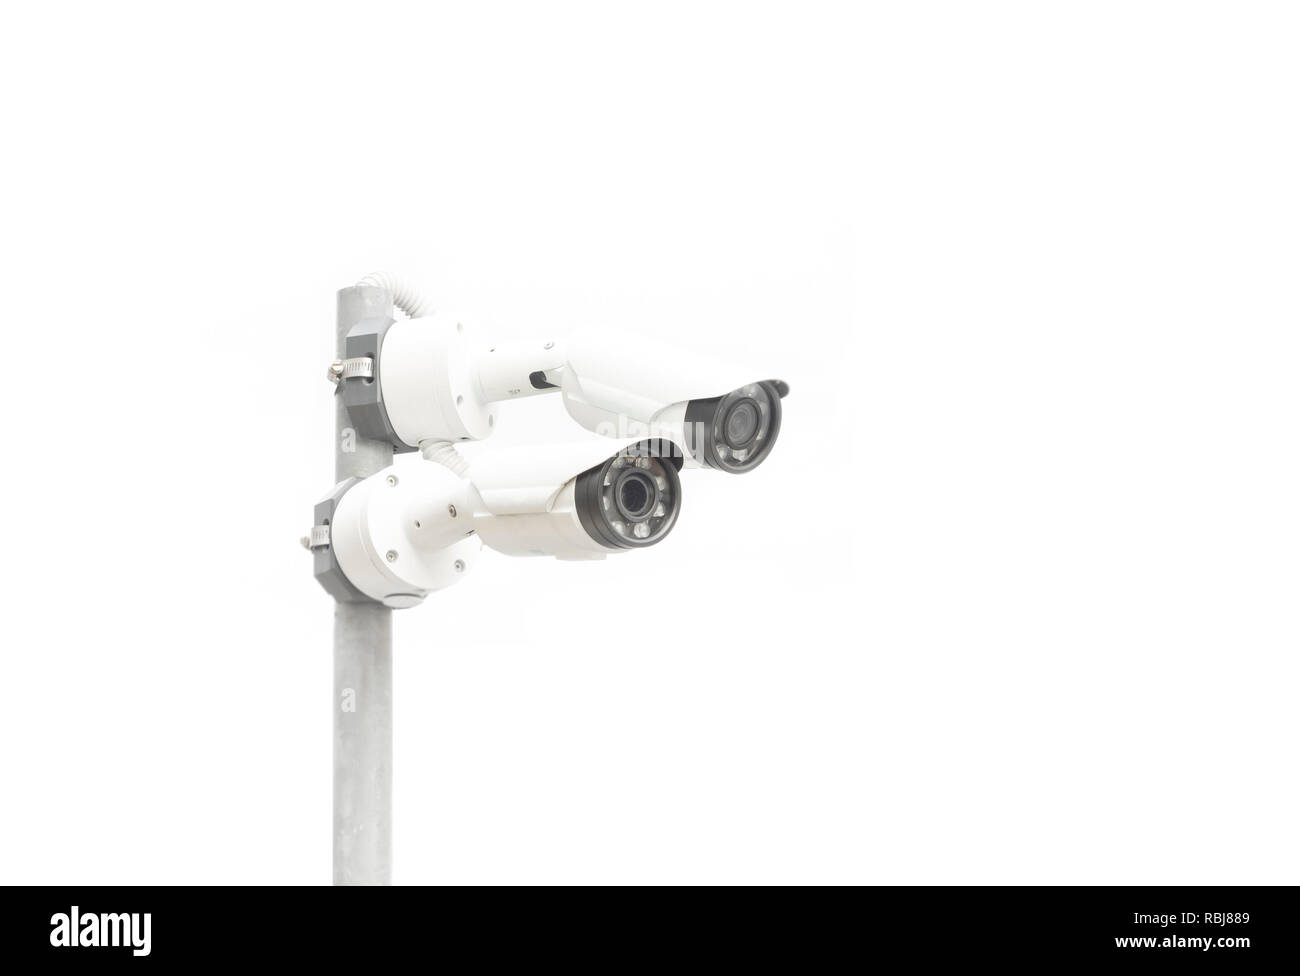 two surveillance camera isolated on white background, copy space - Stock Image